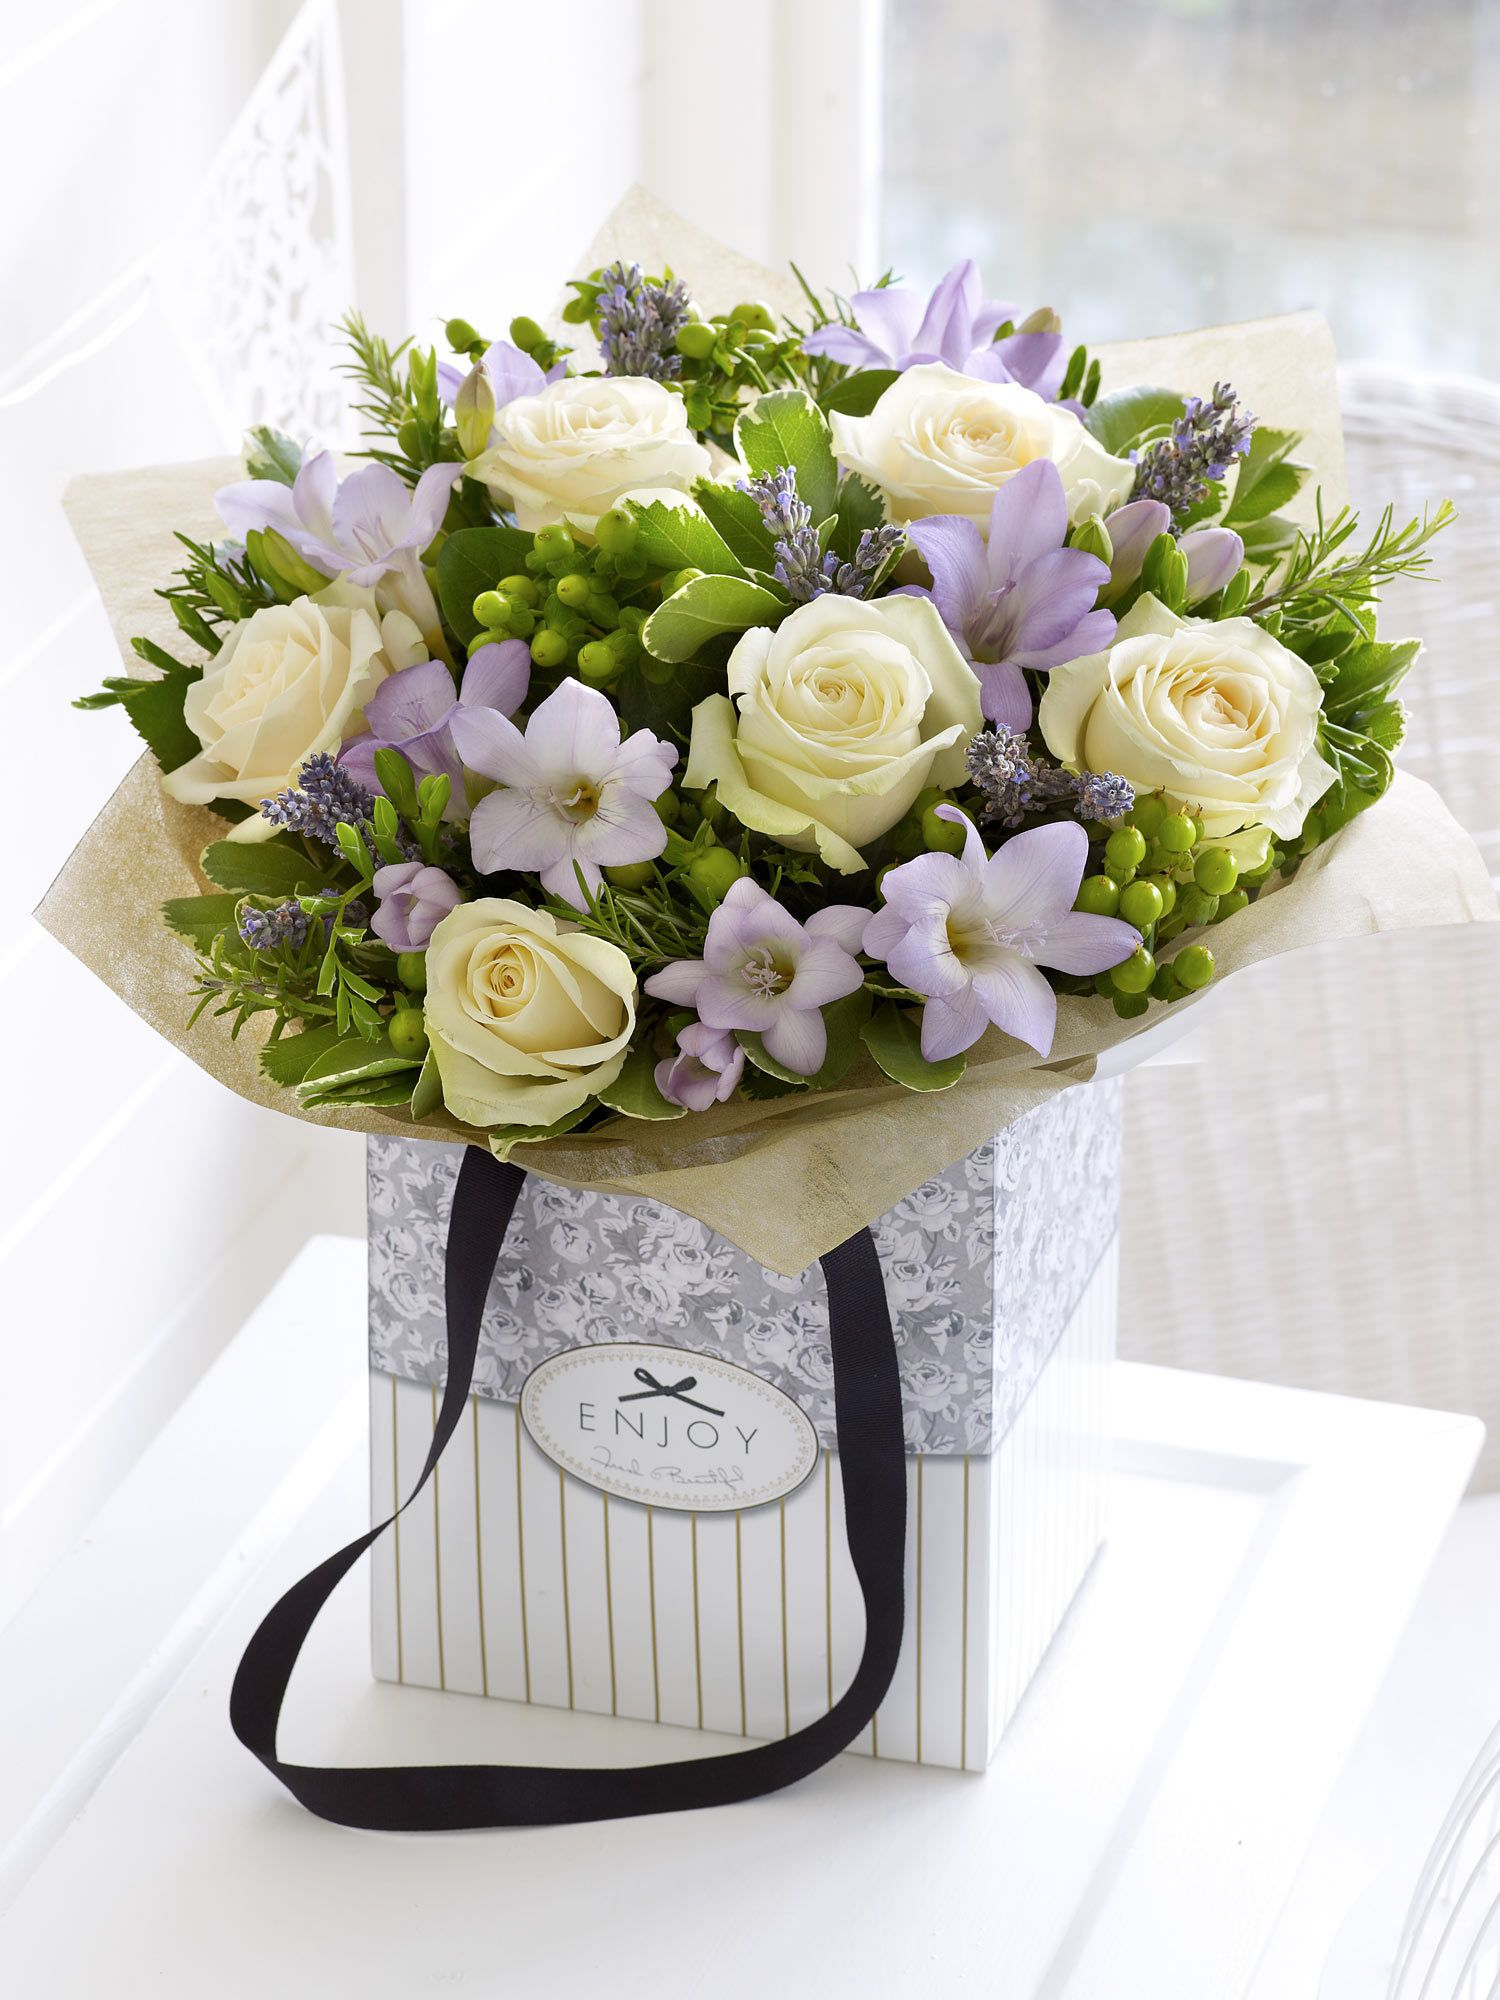 Rose And Lilac Freesia Gift Bag With Chocolates Interflora Flowers Delivered Photo Bouquet Flower Arrangements